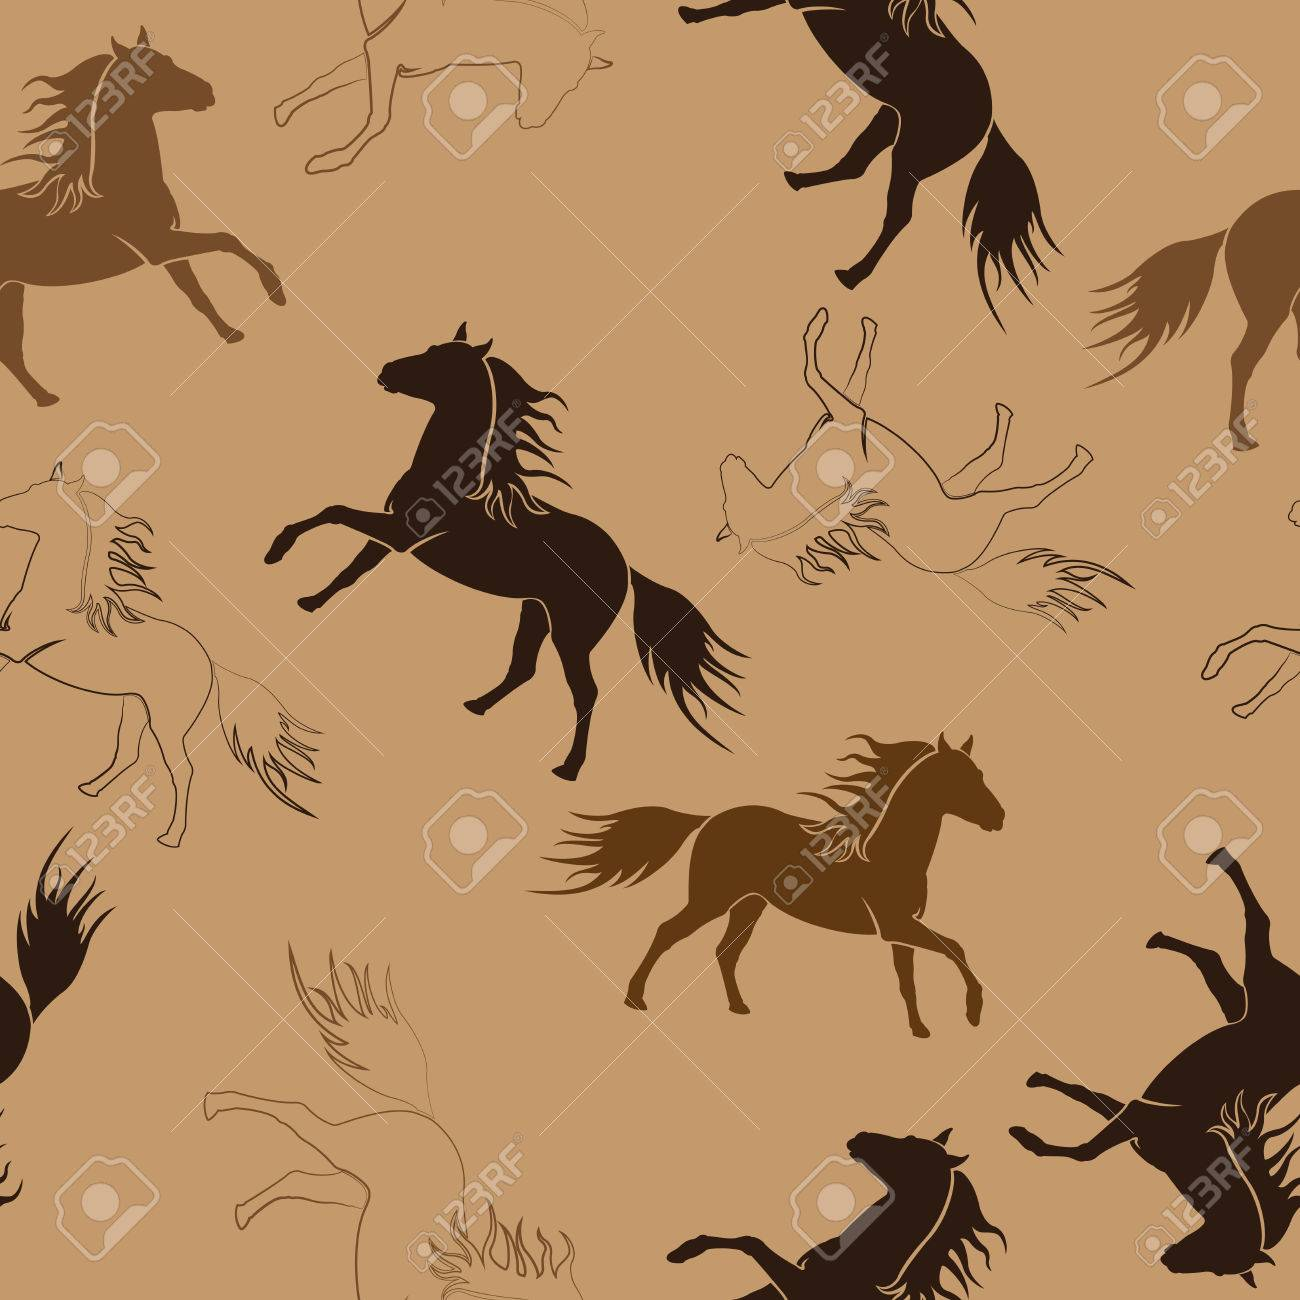 Seamless repeating pattern of running horses. Illustration. Stock Vector - 24233112